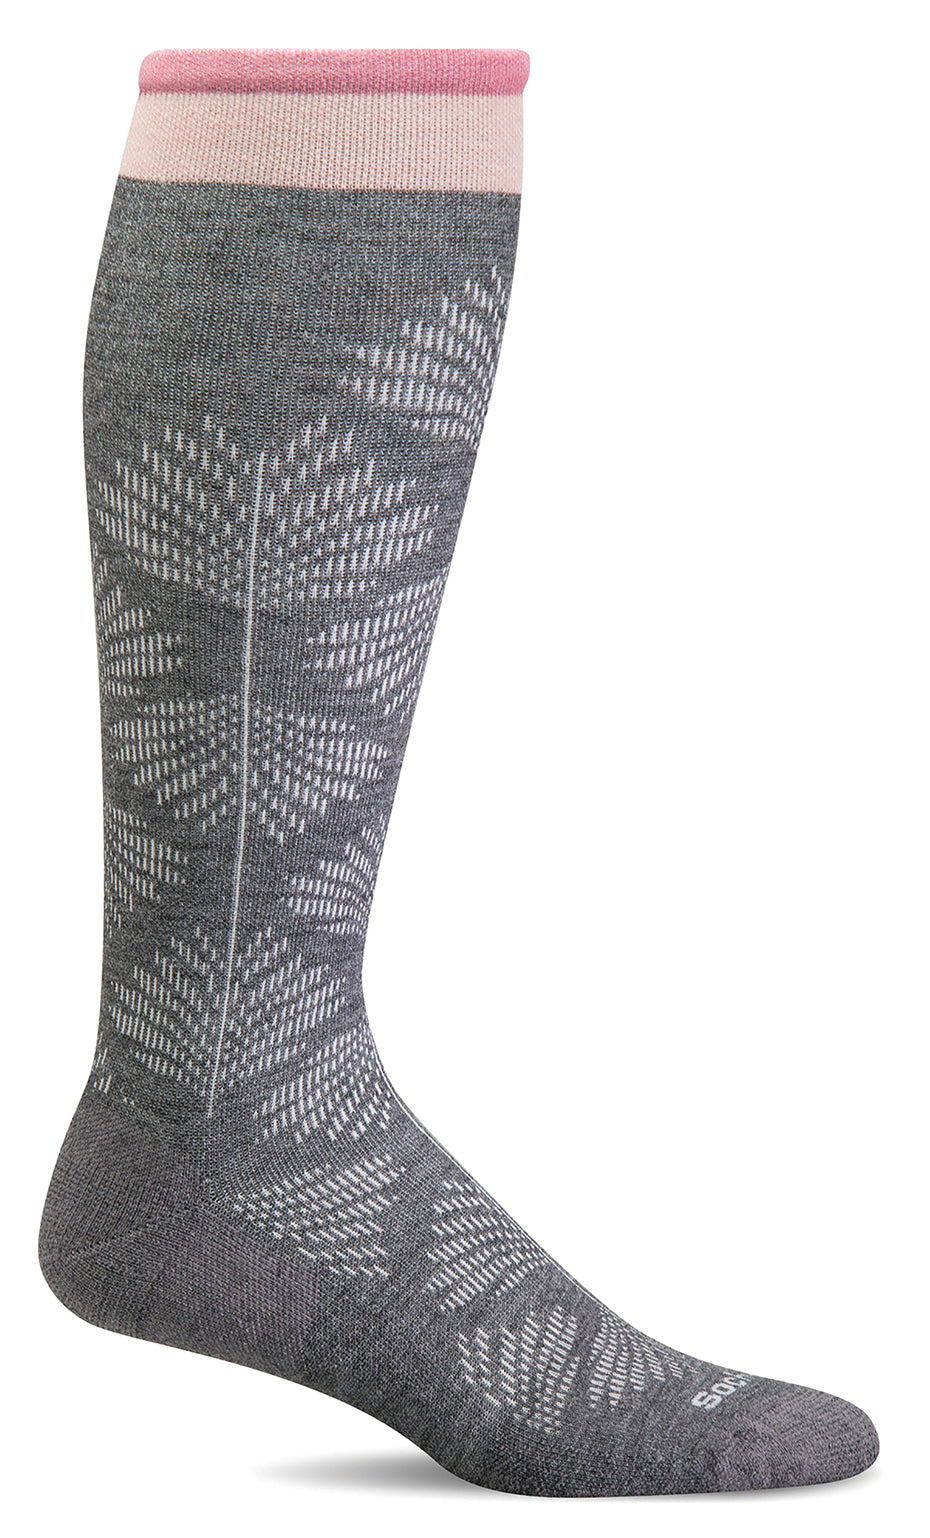 Full Floral - Charcoal Moderate Compression